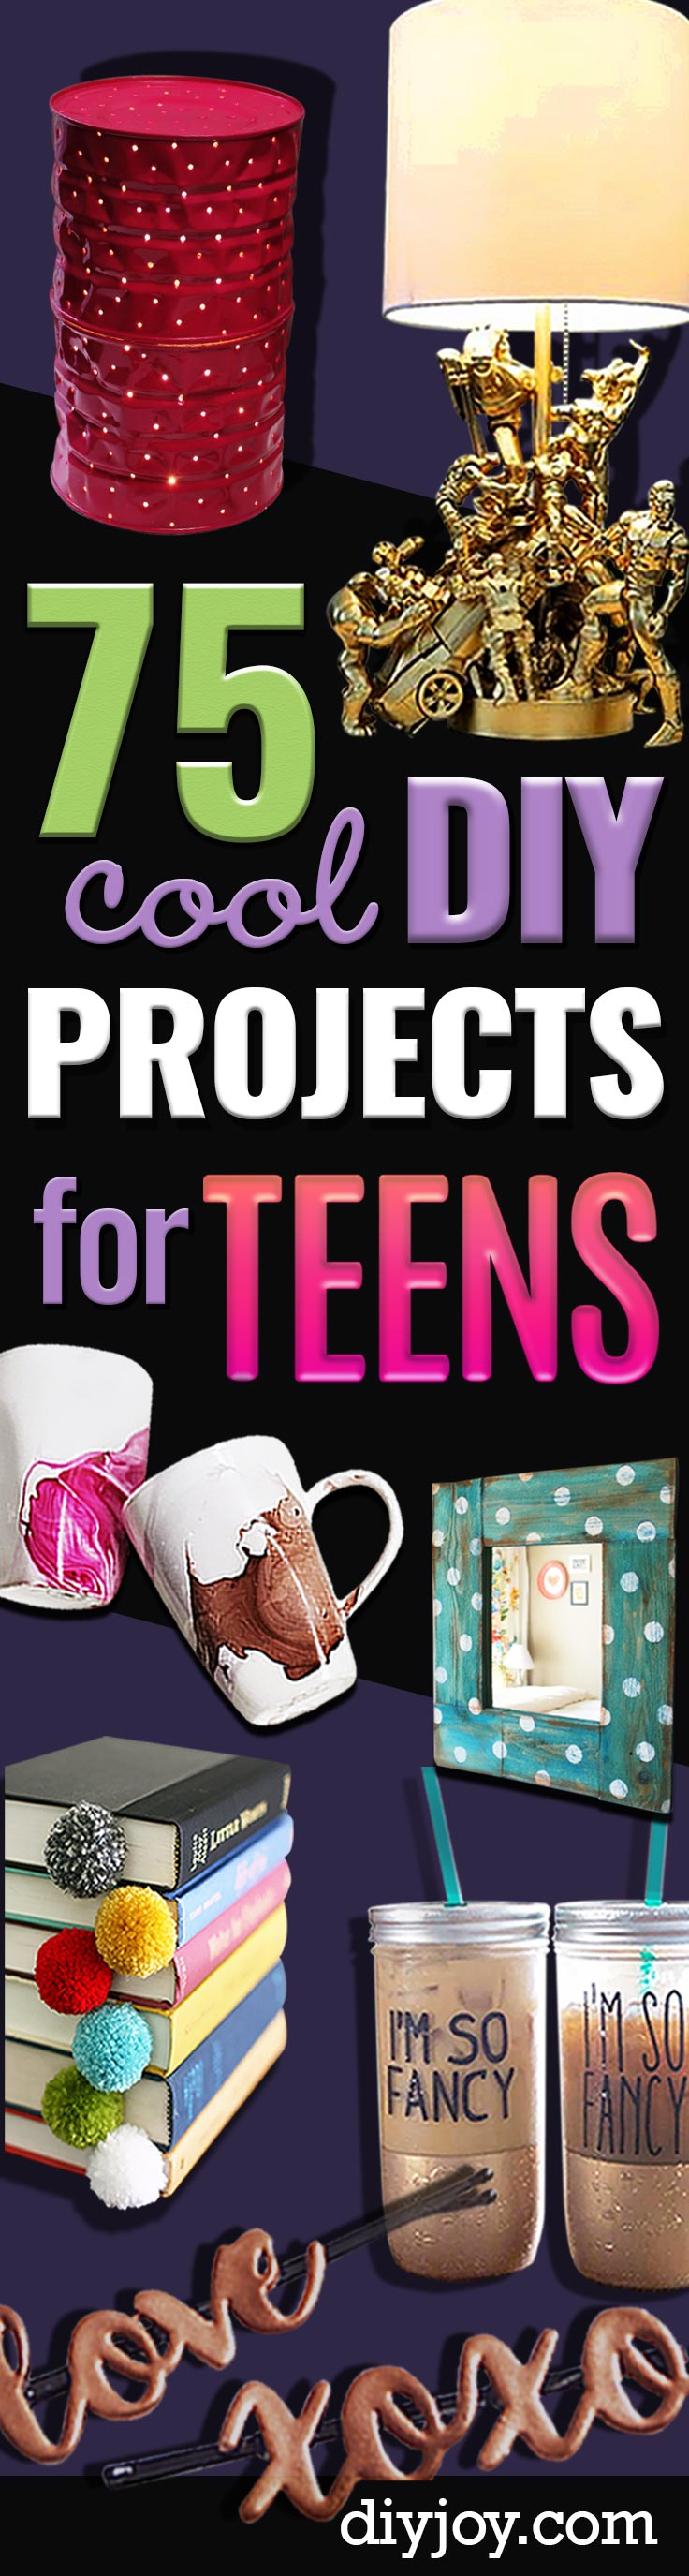 DIY Projects for Teenagers - crafts for teens - Cool Teen Crafts Ideas for Bedroom Decor, Gifts, Clothes and Fun Room Organization. Summer and Awesome School Stuff